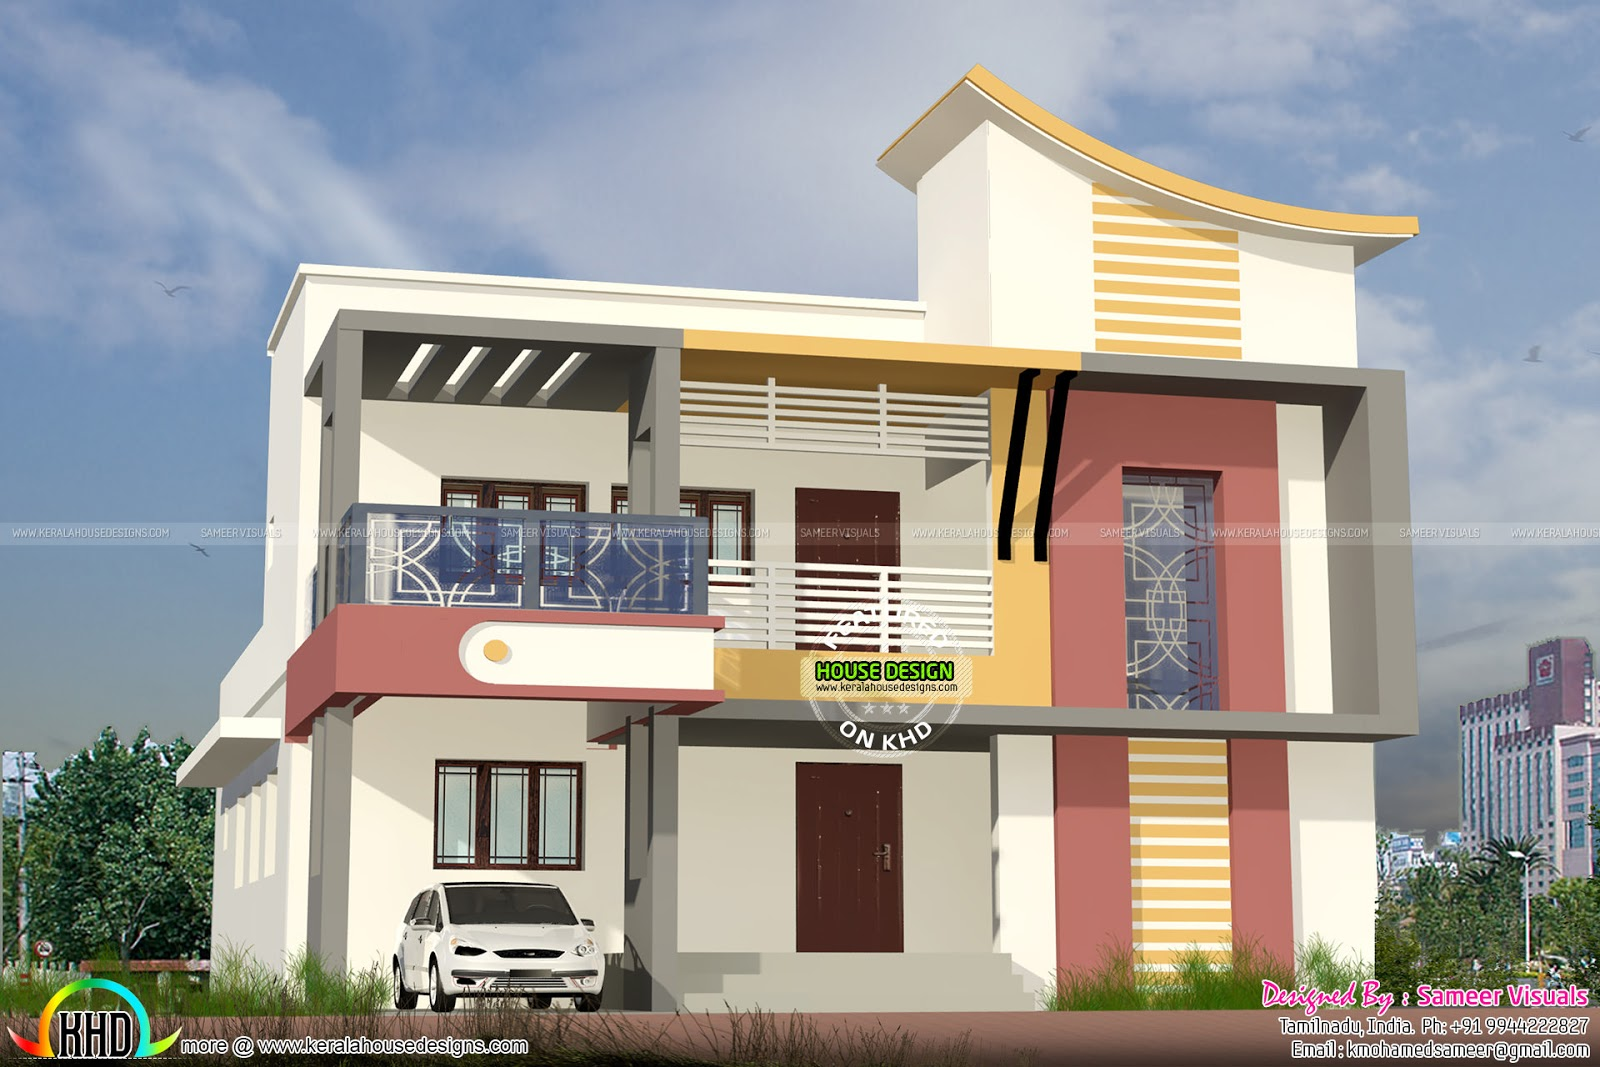 Model house plan in tamilnadu joy studio design gallery for South indian small house designs